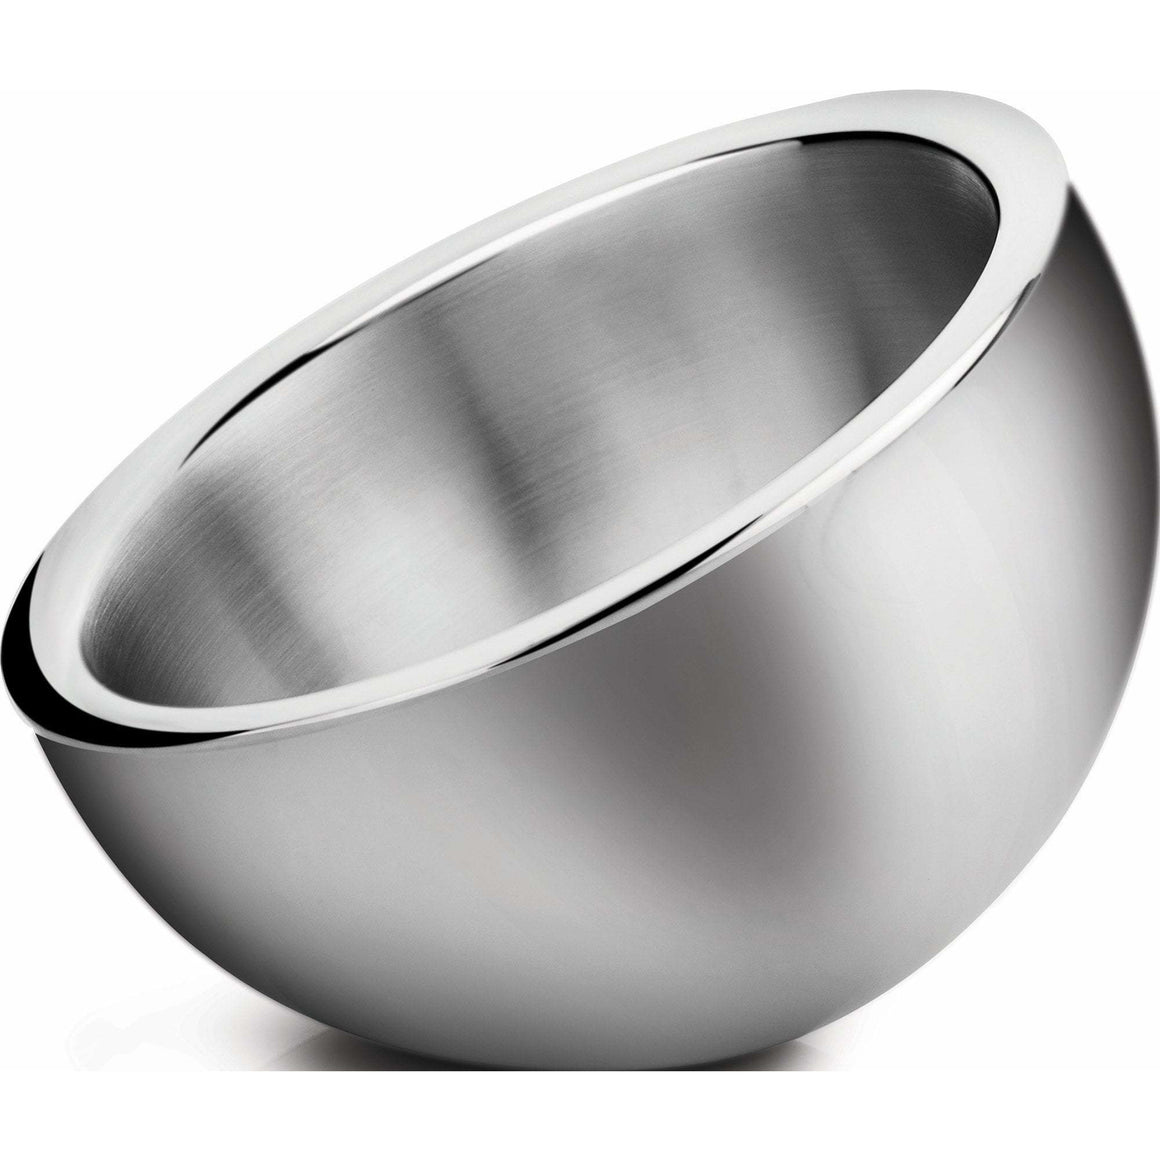 Winco - DWAB-S - 1-1/2qt Angled Display Bowl, Double Wall Insulated, Stainless Steel - Display